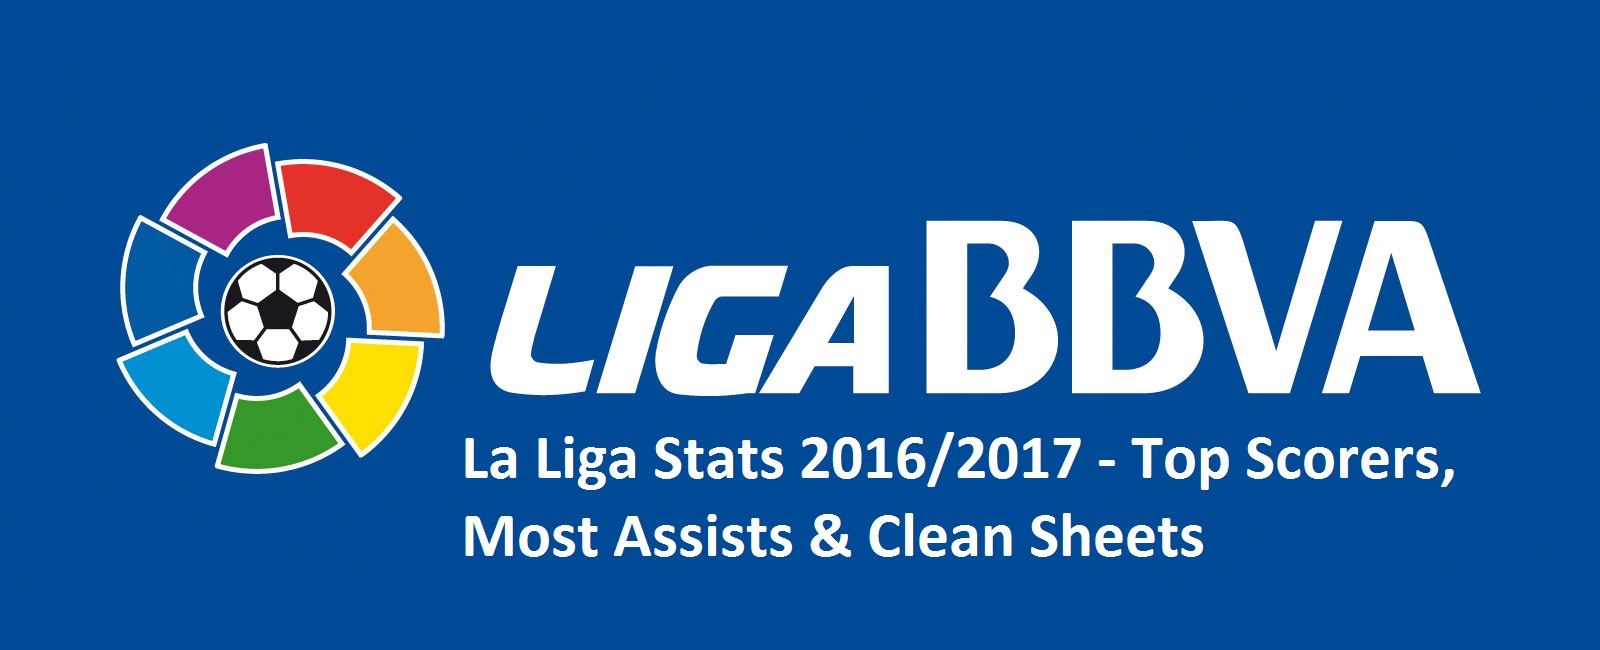 La Liga Stats 2016/2017 - Top Scorers, Most Assists & Clean Sheets